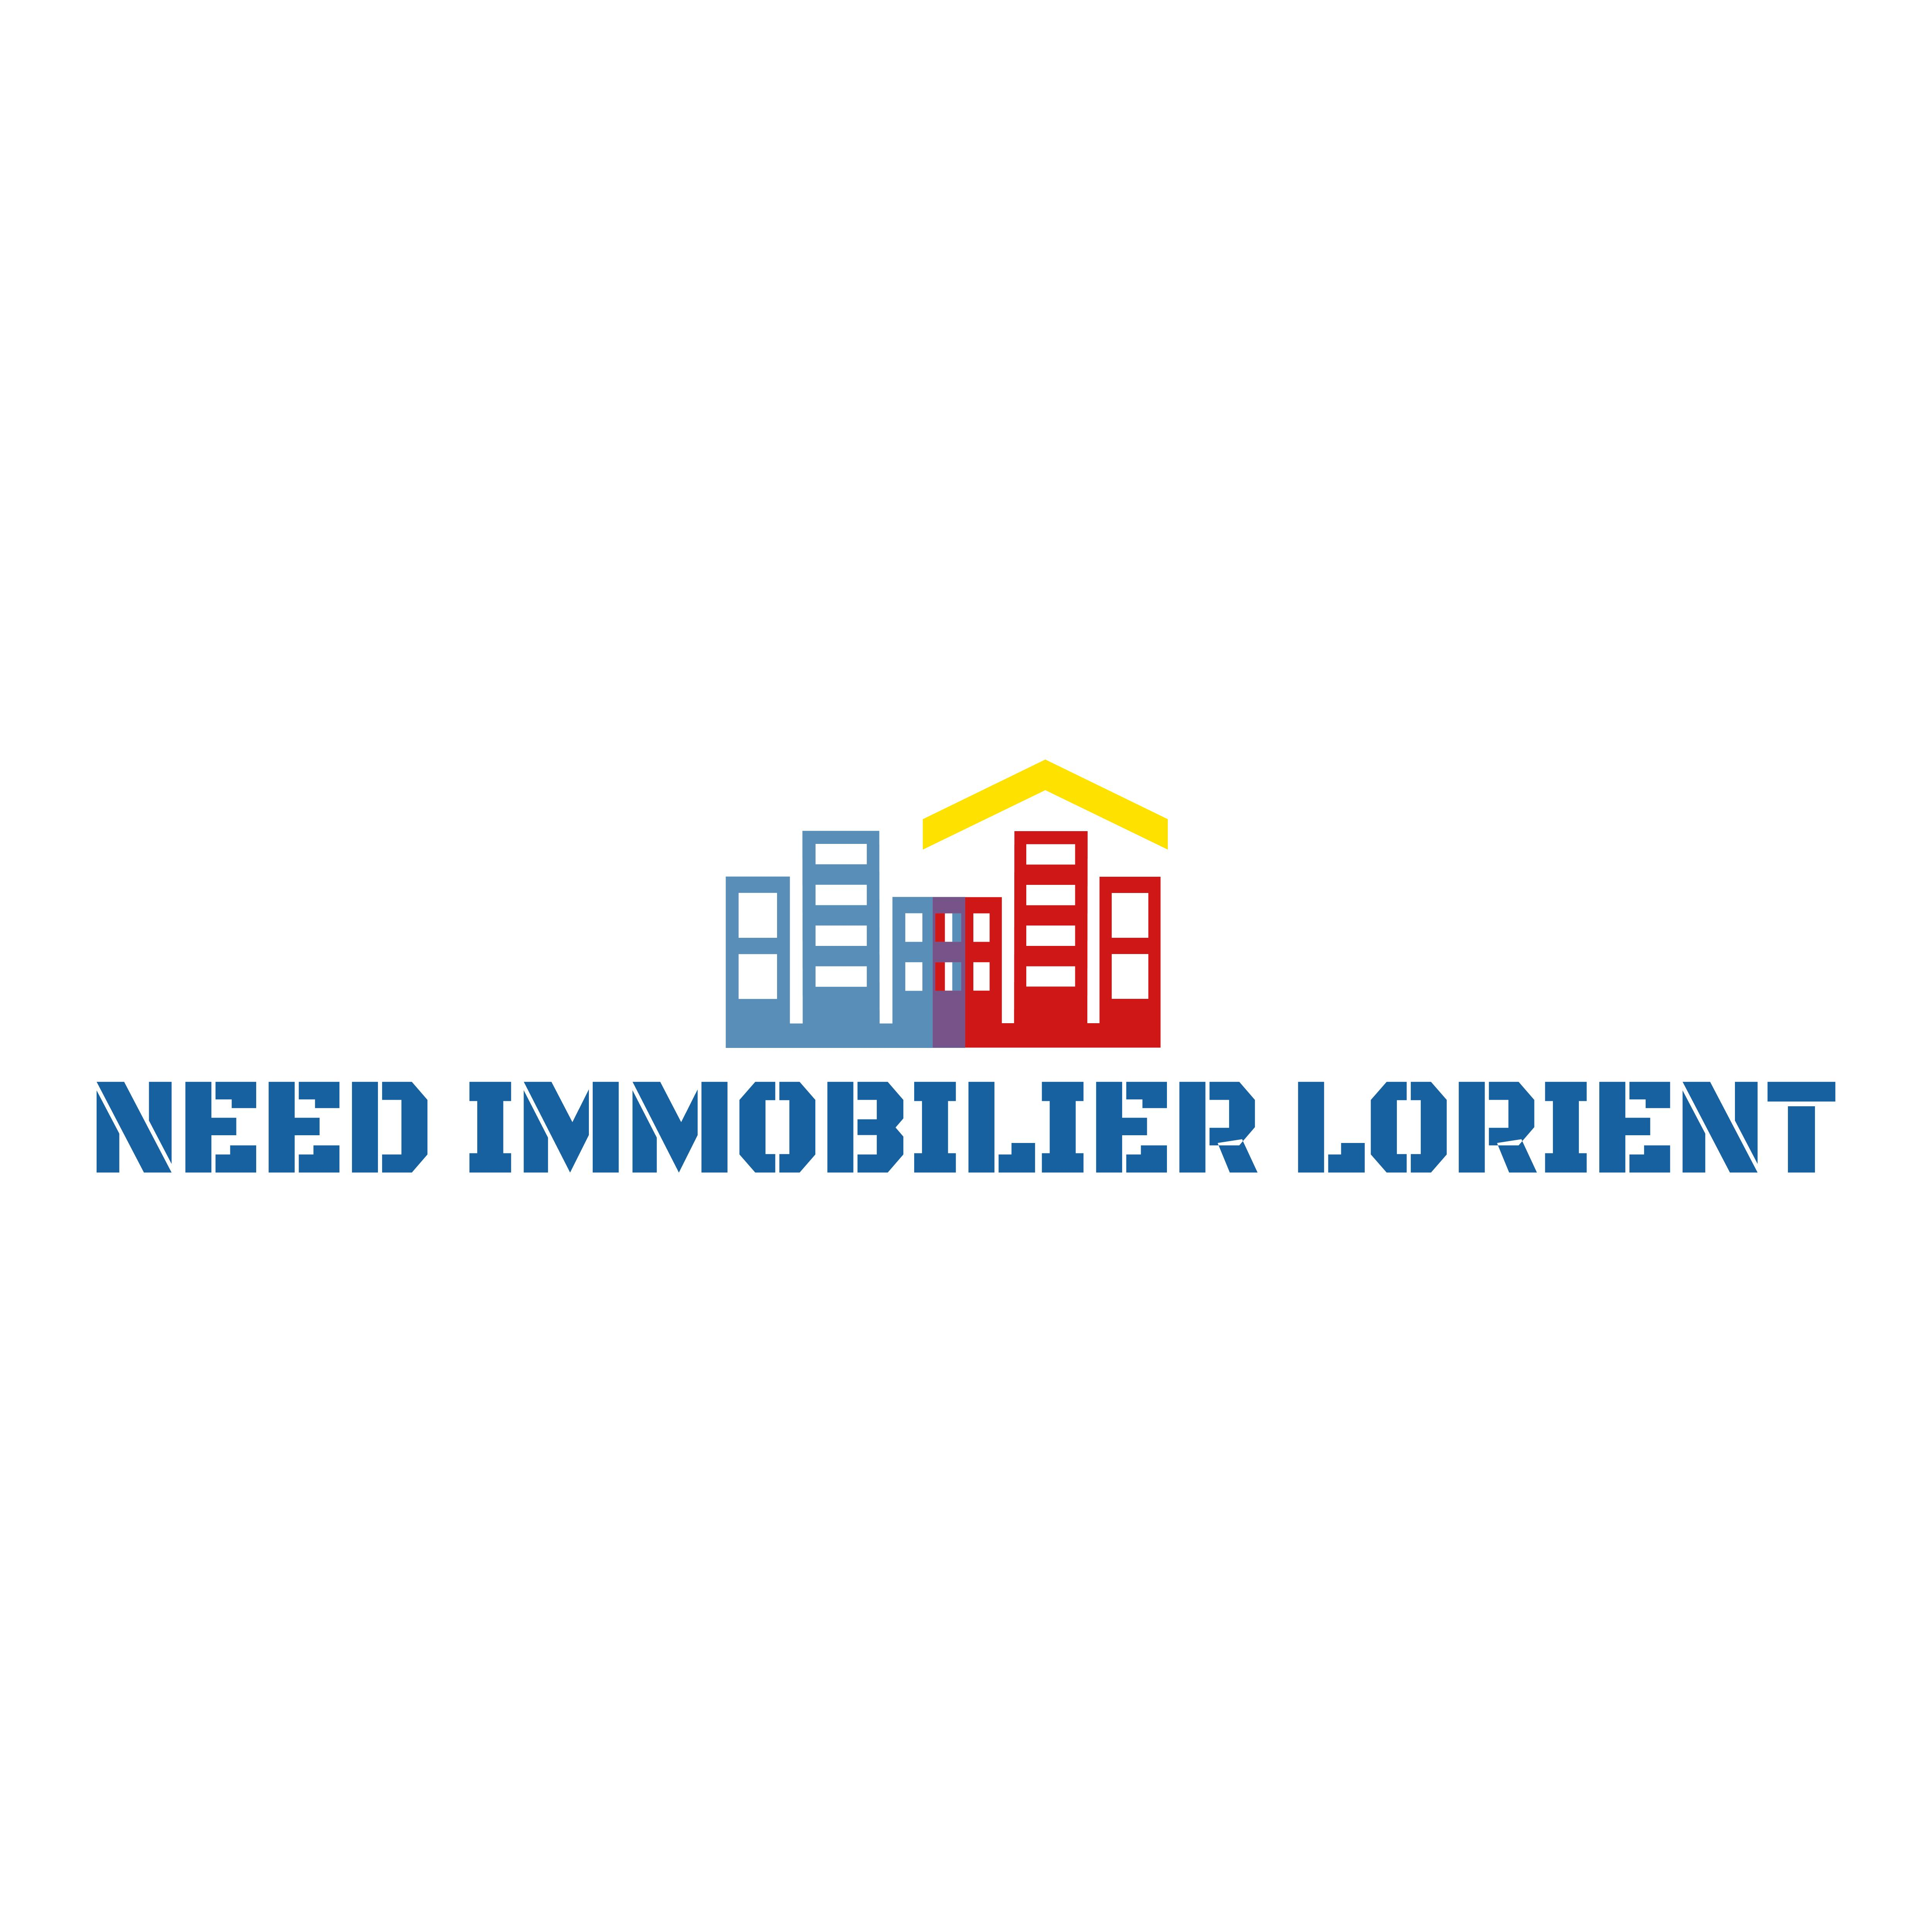 NEED IMMOBILIER LORIENT